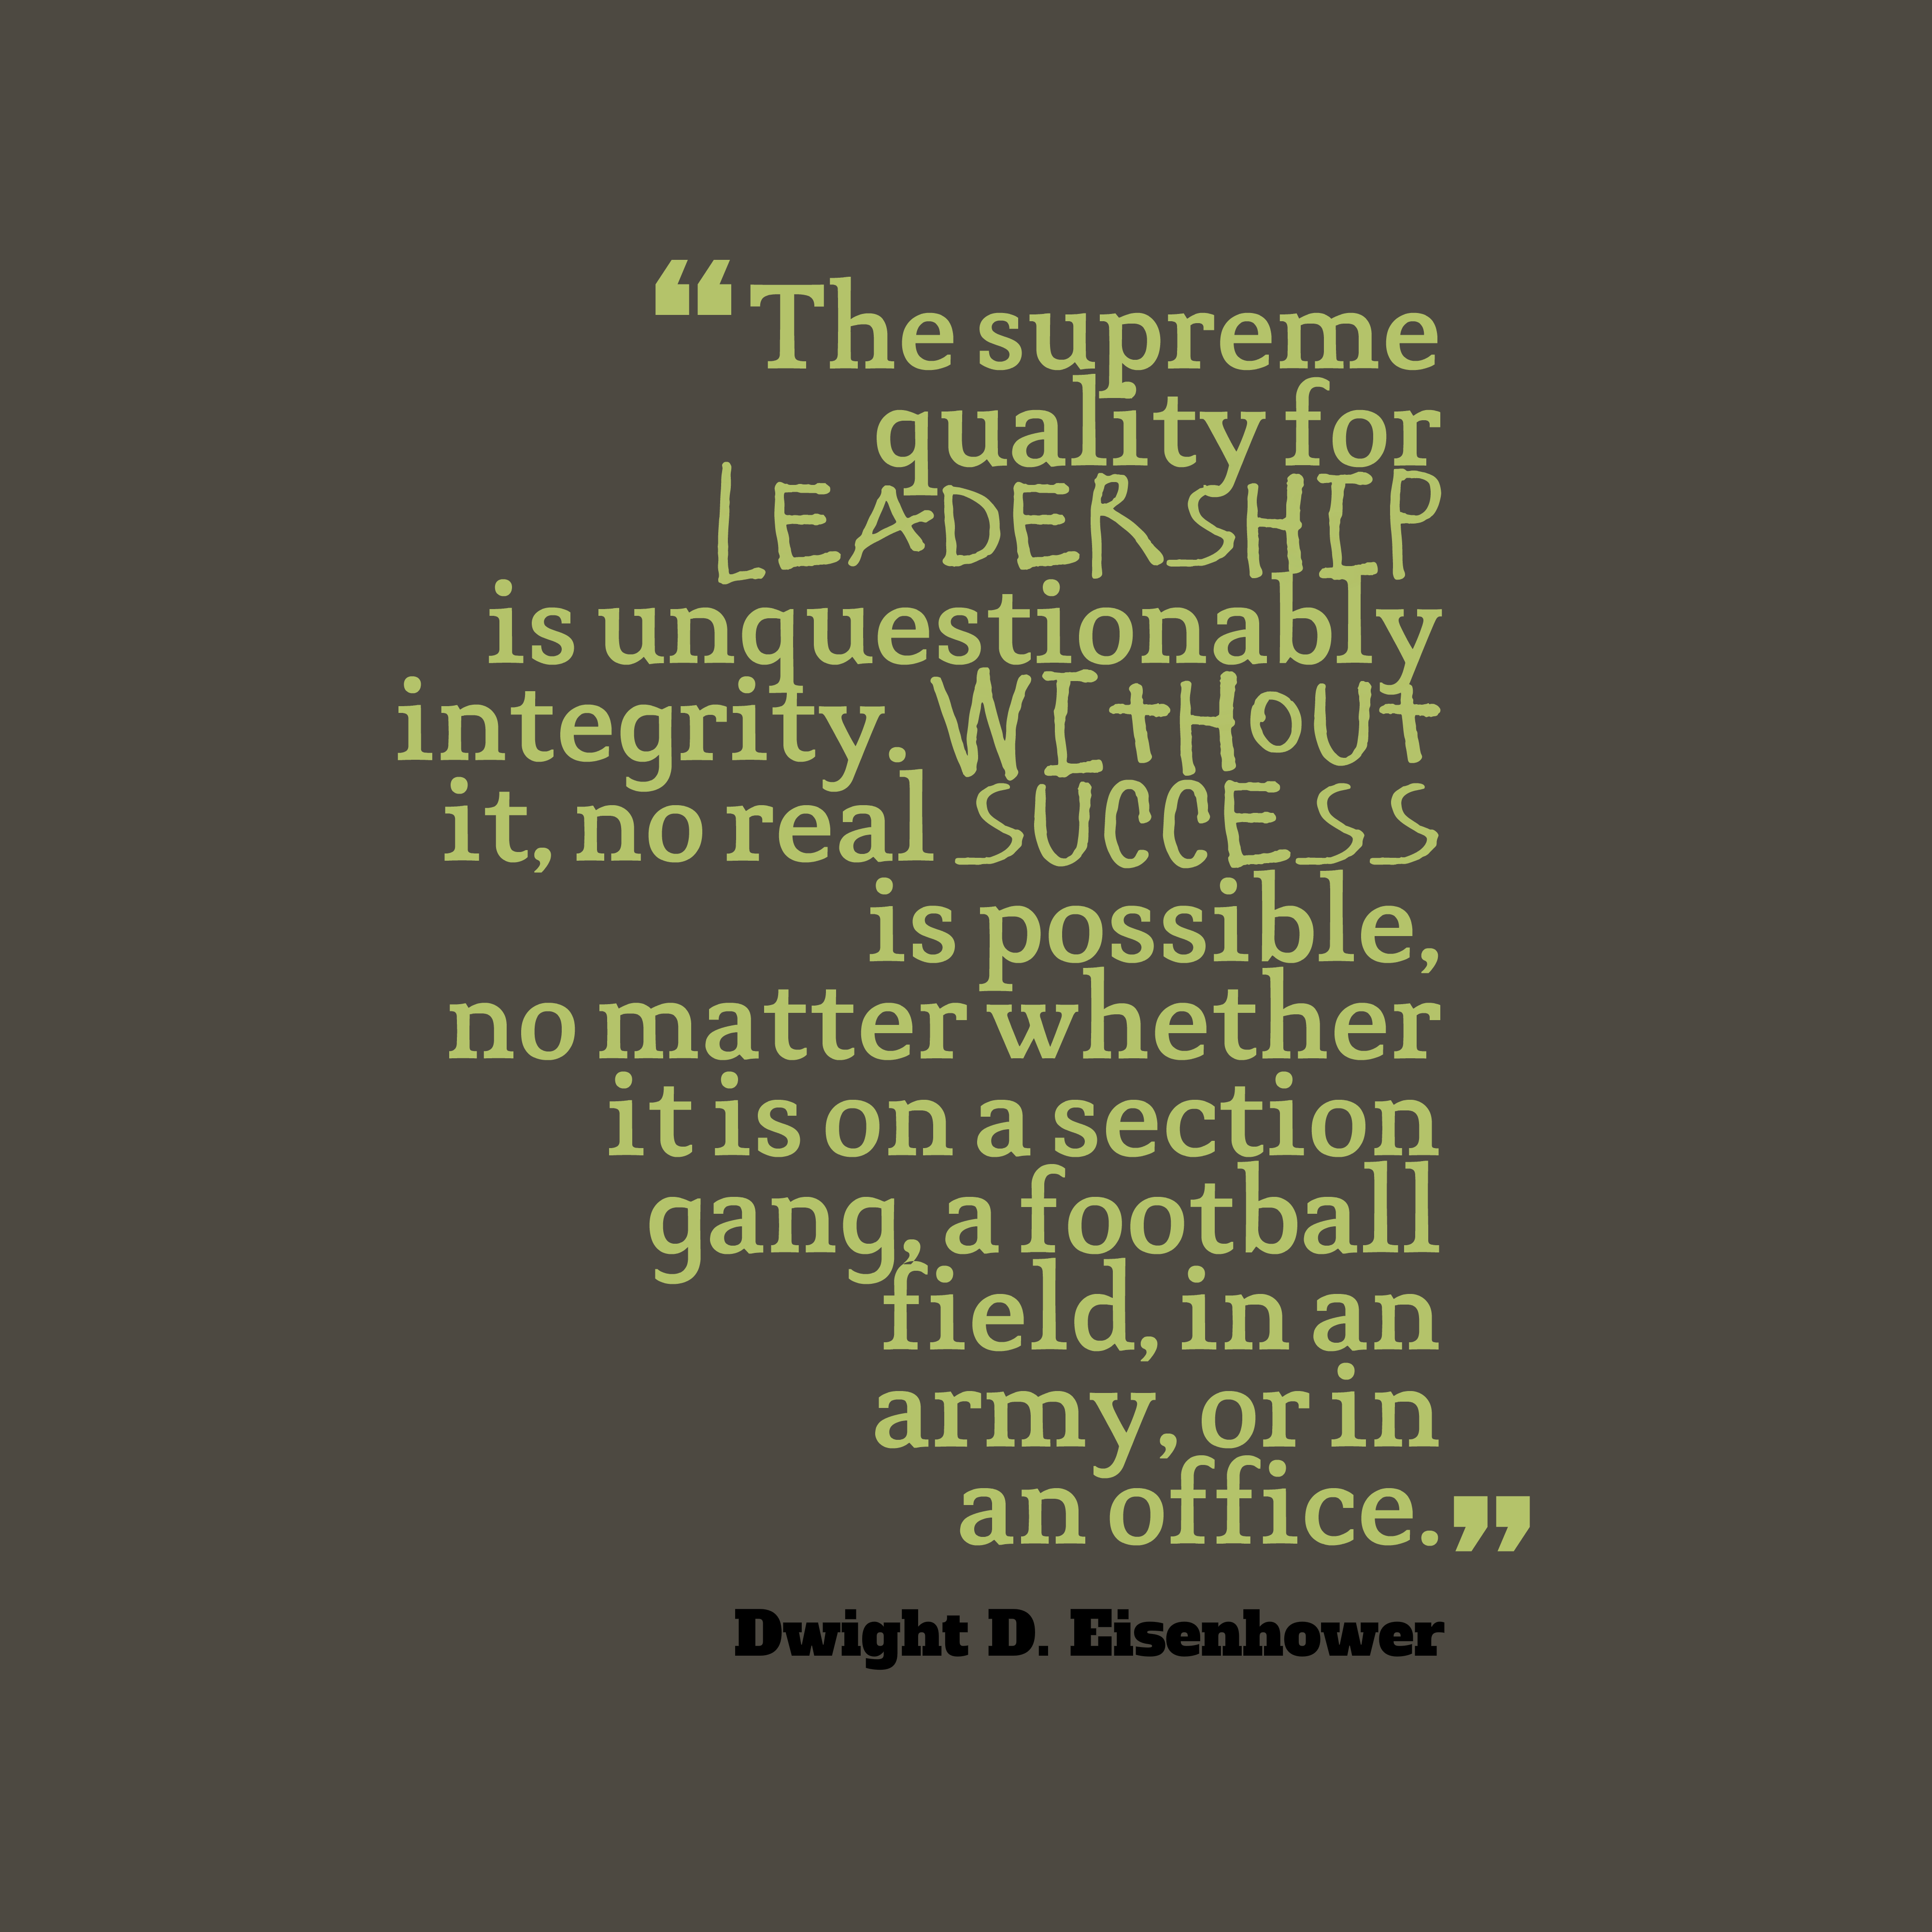 Quotes image of The supreme quality for leadership is unquestionably integrity. Without it, no real success is possible, no matter whether it is on a section gang, a football field, in an army, or in an office.